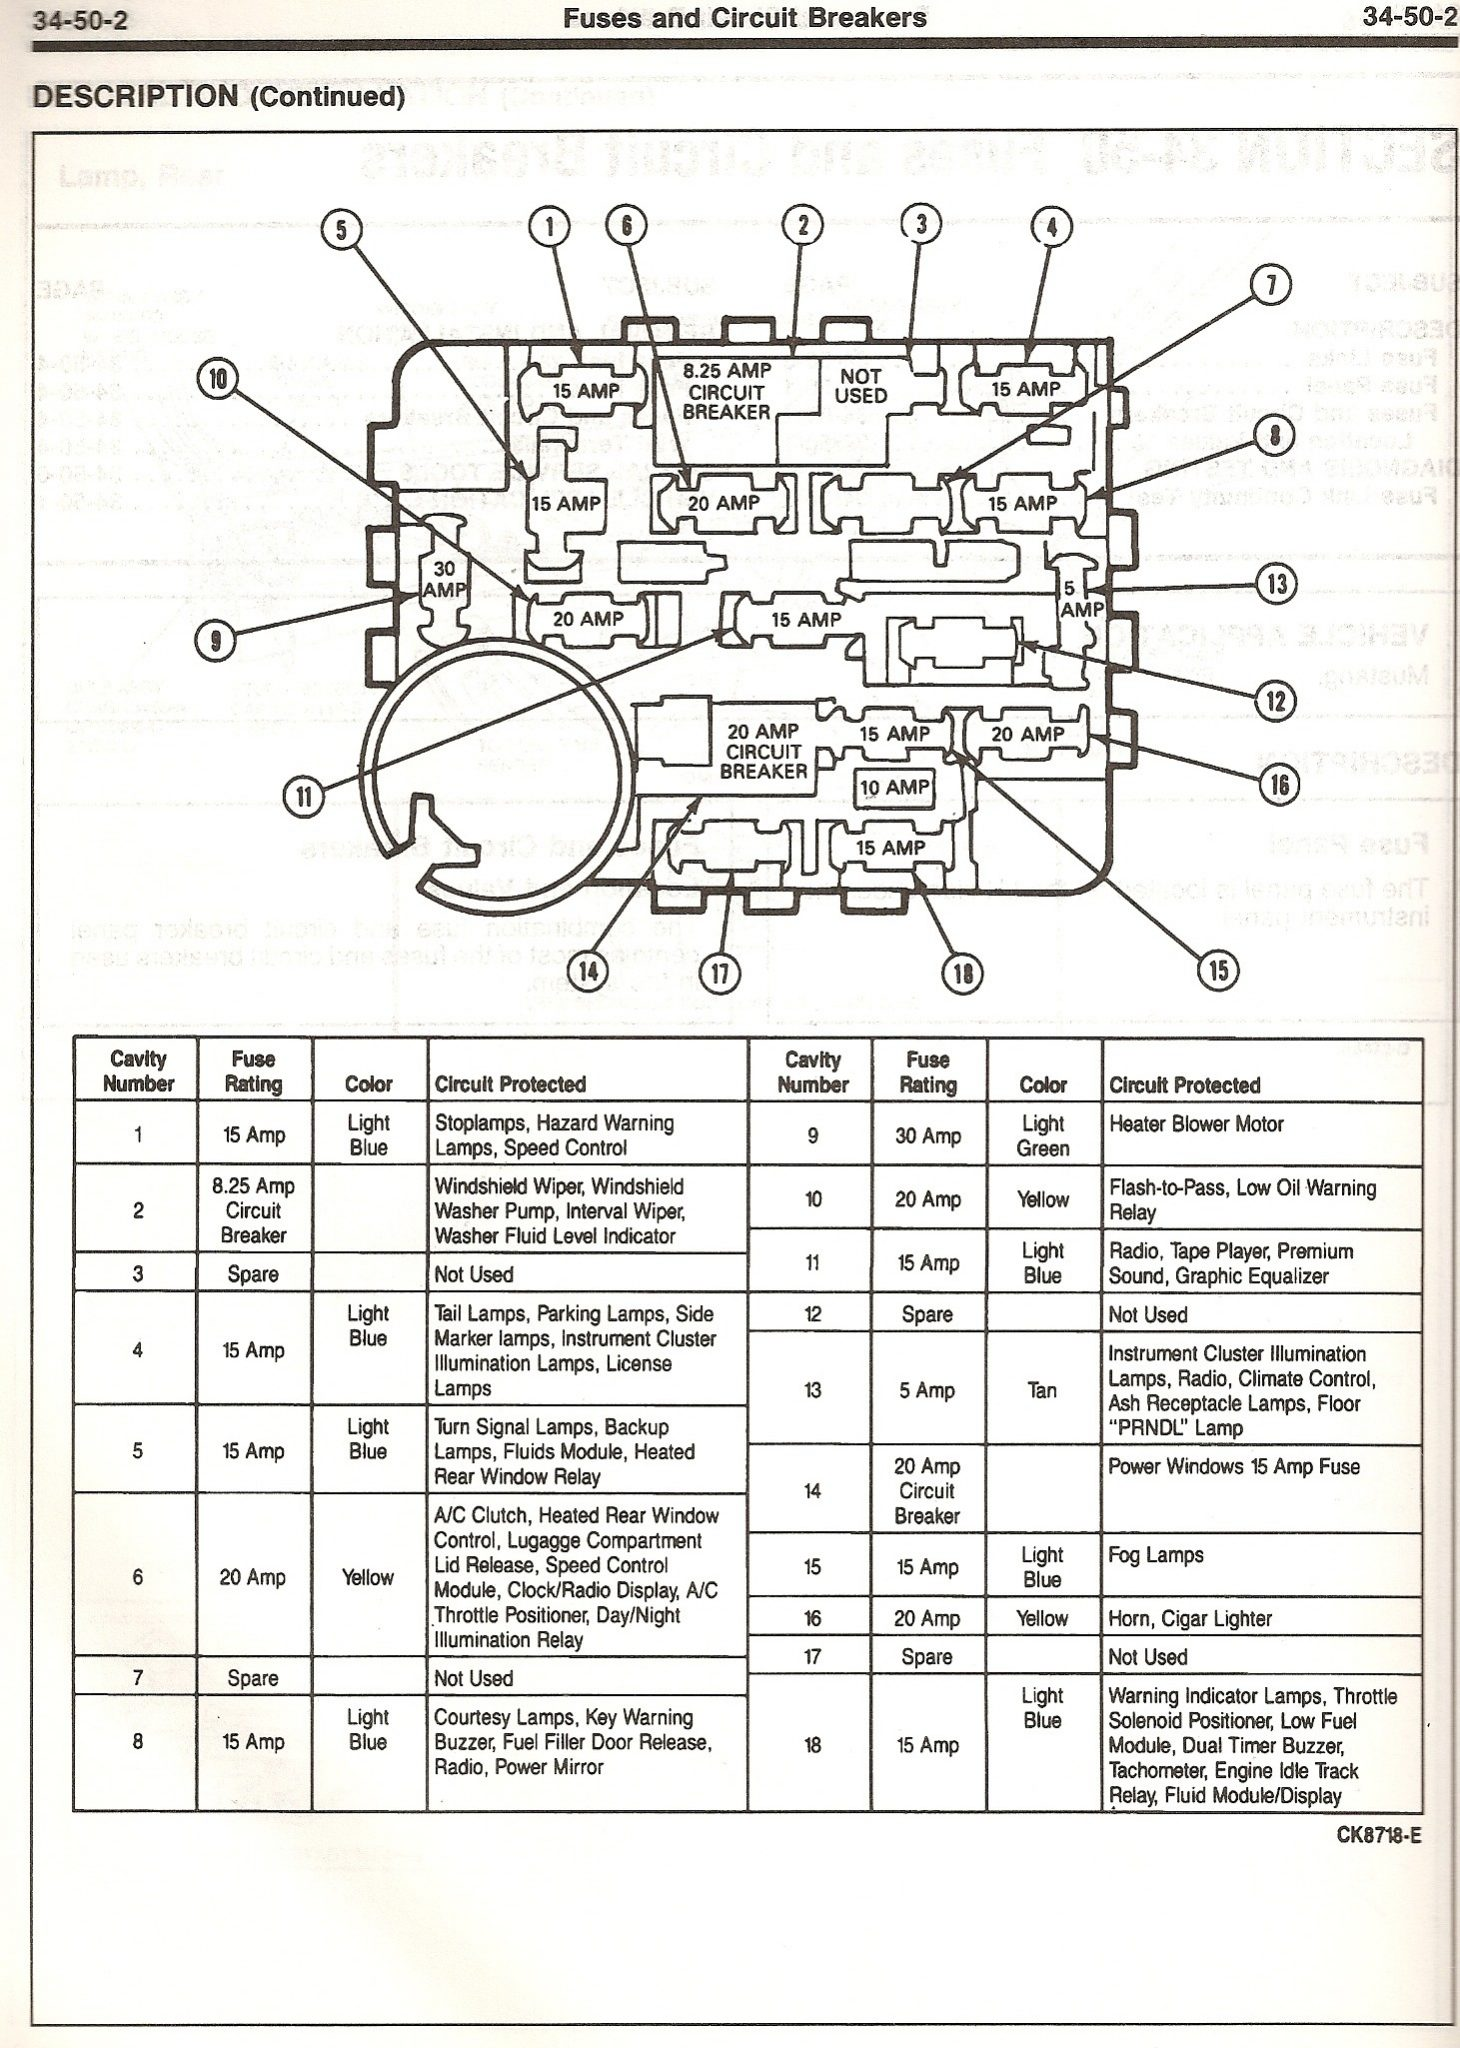 stereo wiring diagram 1992 chevy silverado images car wiring 4x4 vacuum diagram on 93 mustang ecm wiring get image